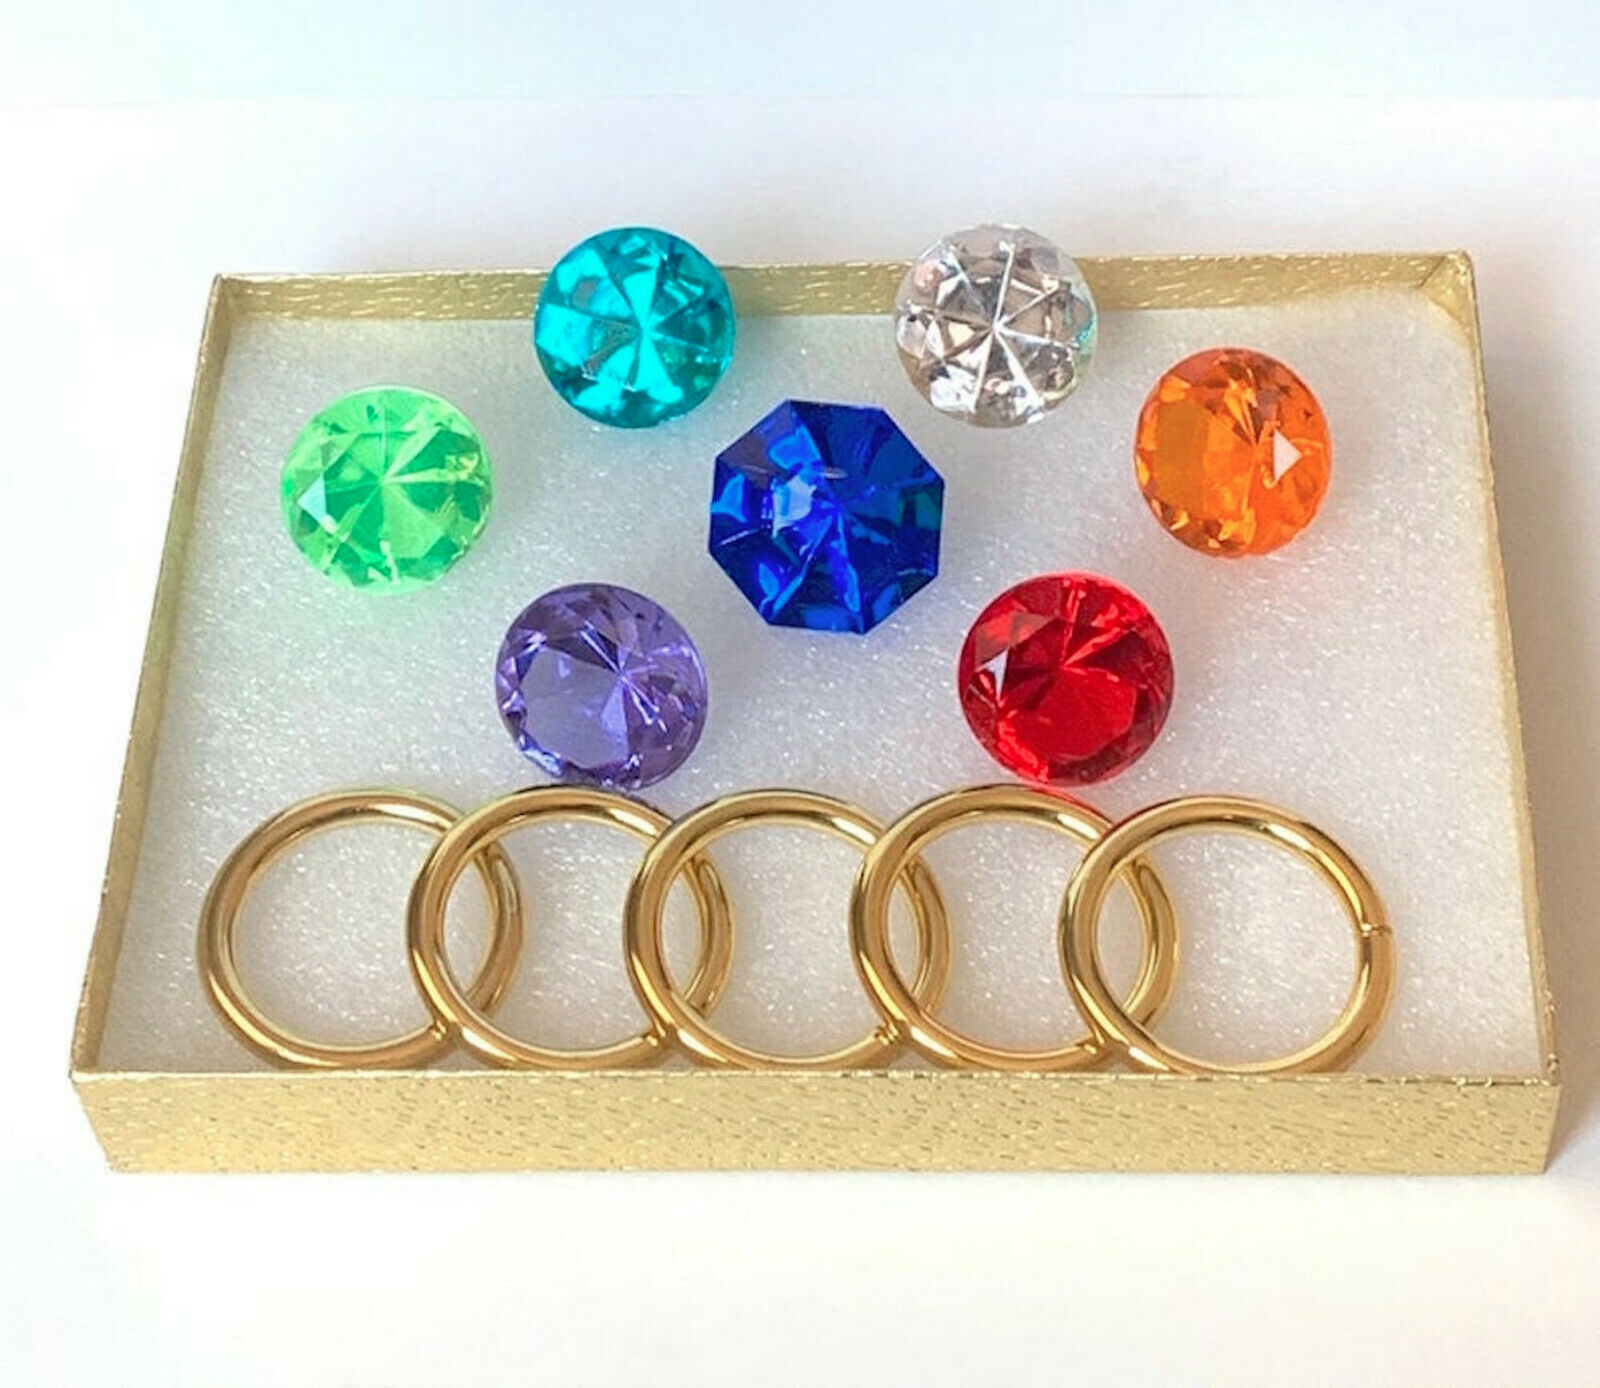 7 Chaos Emeralds & 5 Power Rings - SONIC - IN A GIFT BOX